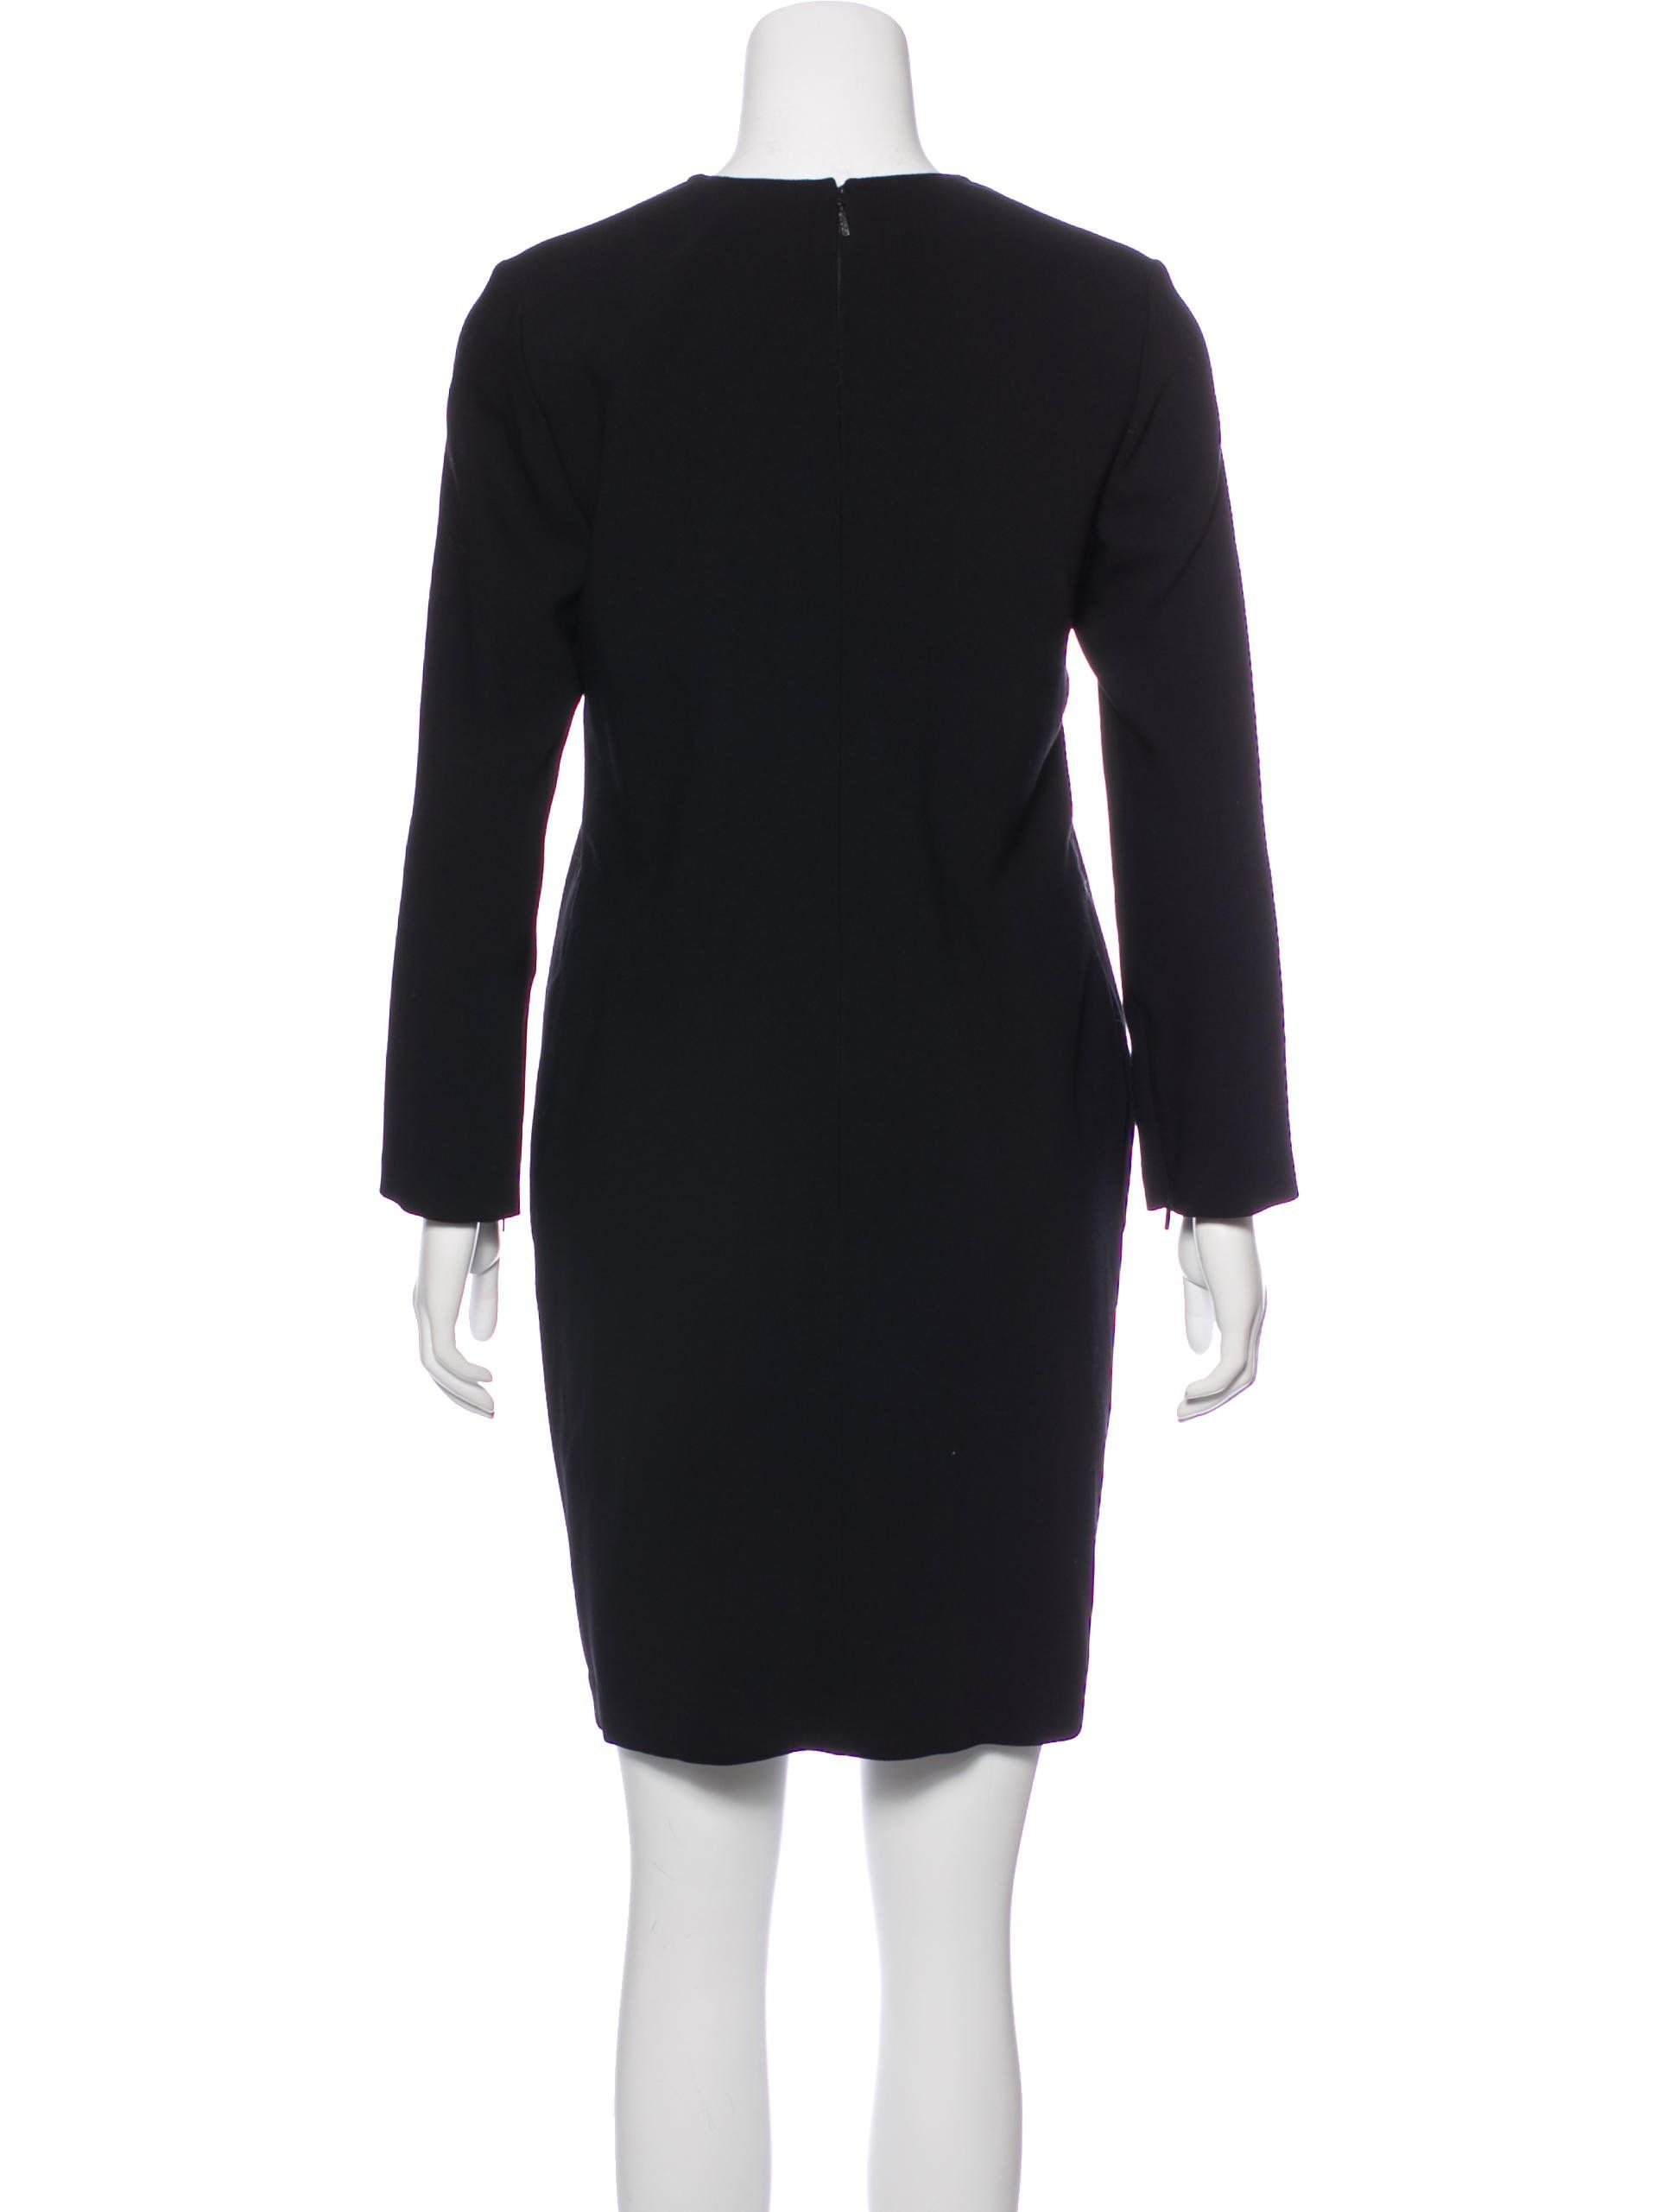 Black gucci wool mini dress with long sleeves goldtone accents at